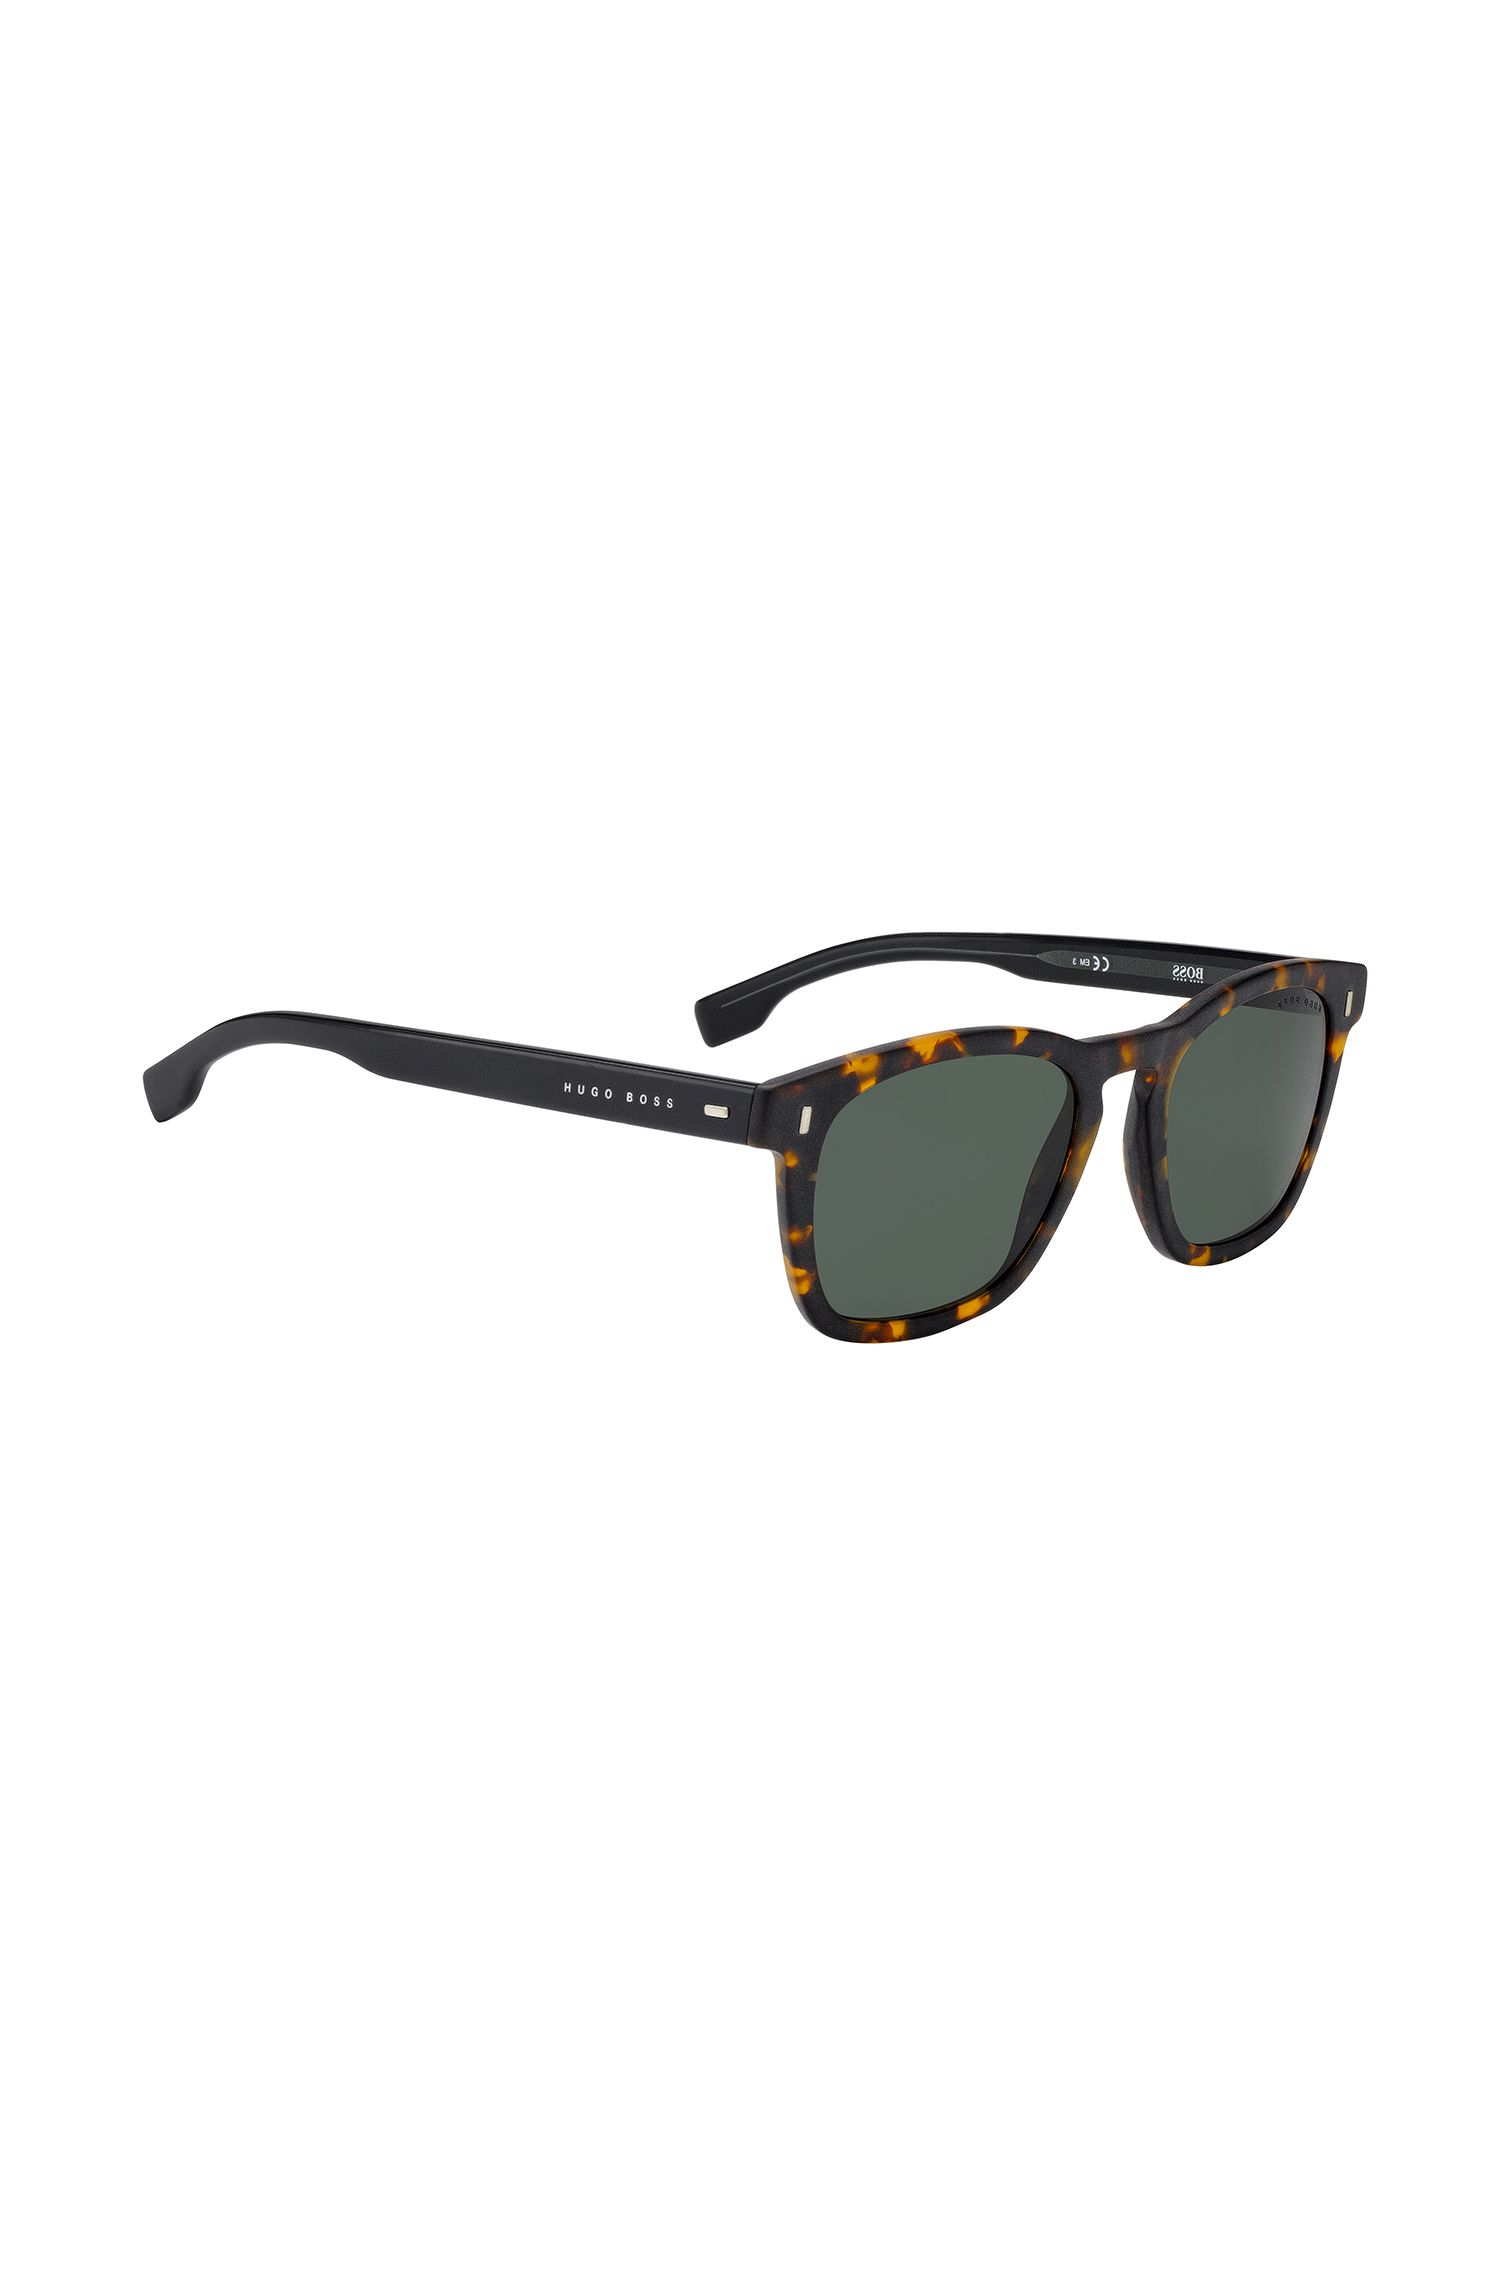 Wayfarer-inspired sunglasses with Havana pattern